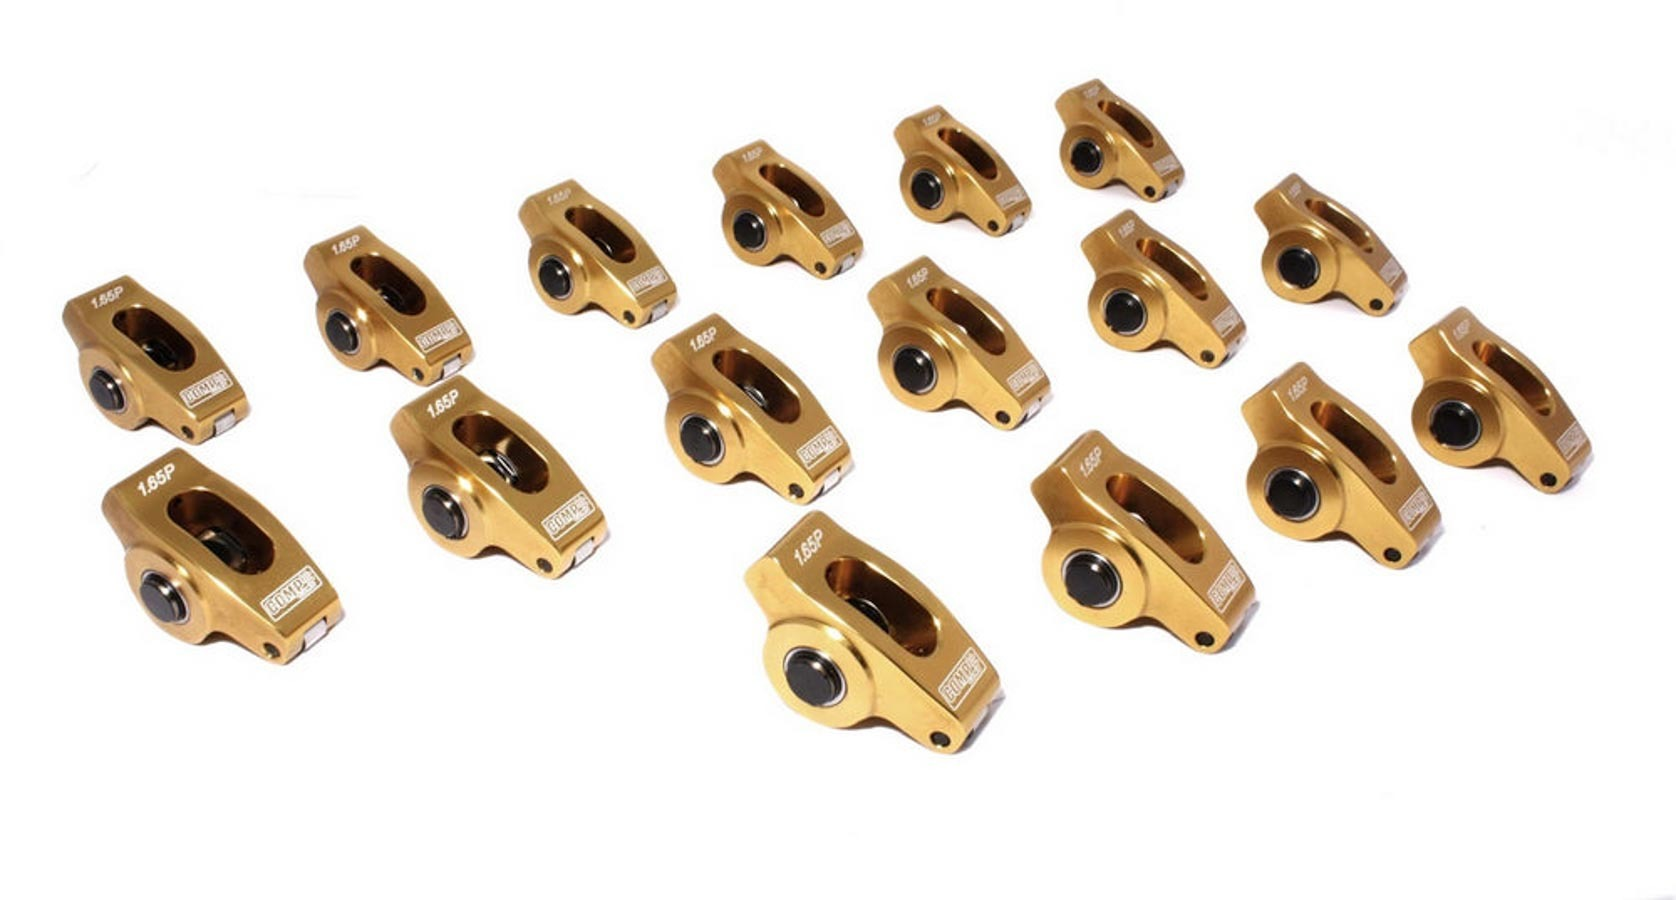 Comp Cams 19061-16 Rocker Arm, Ultra Gold ARC, 7/16 in Stud Mount, 1.65 Ratio, Full Roller, Aluminum, Gold Anodized, Pontiac V8, Set of 16